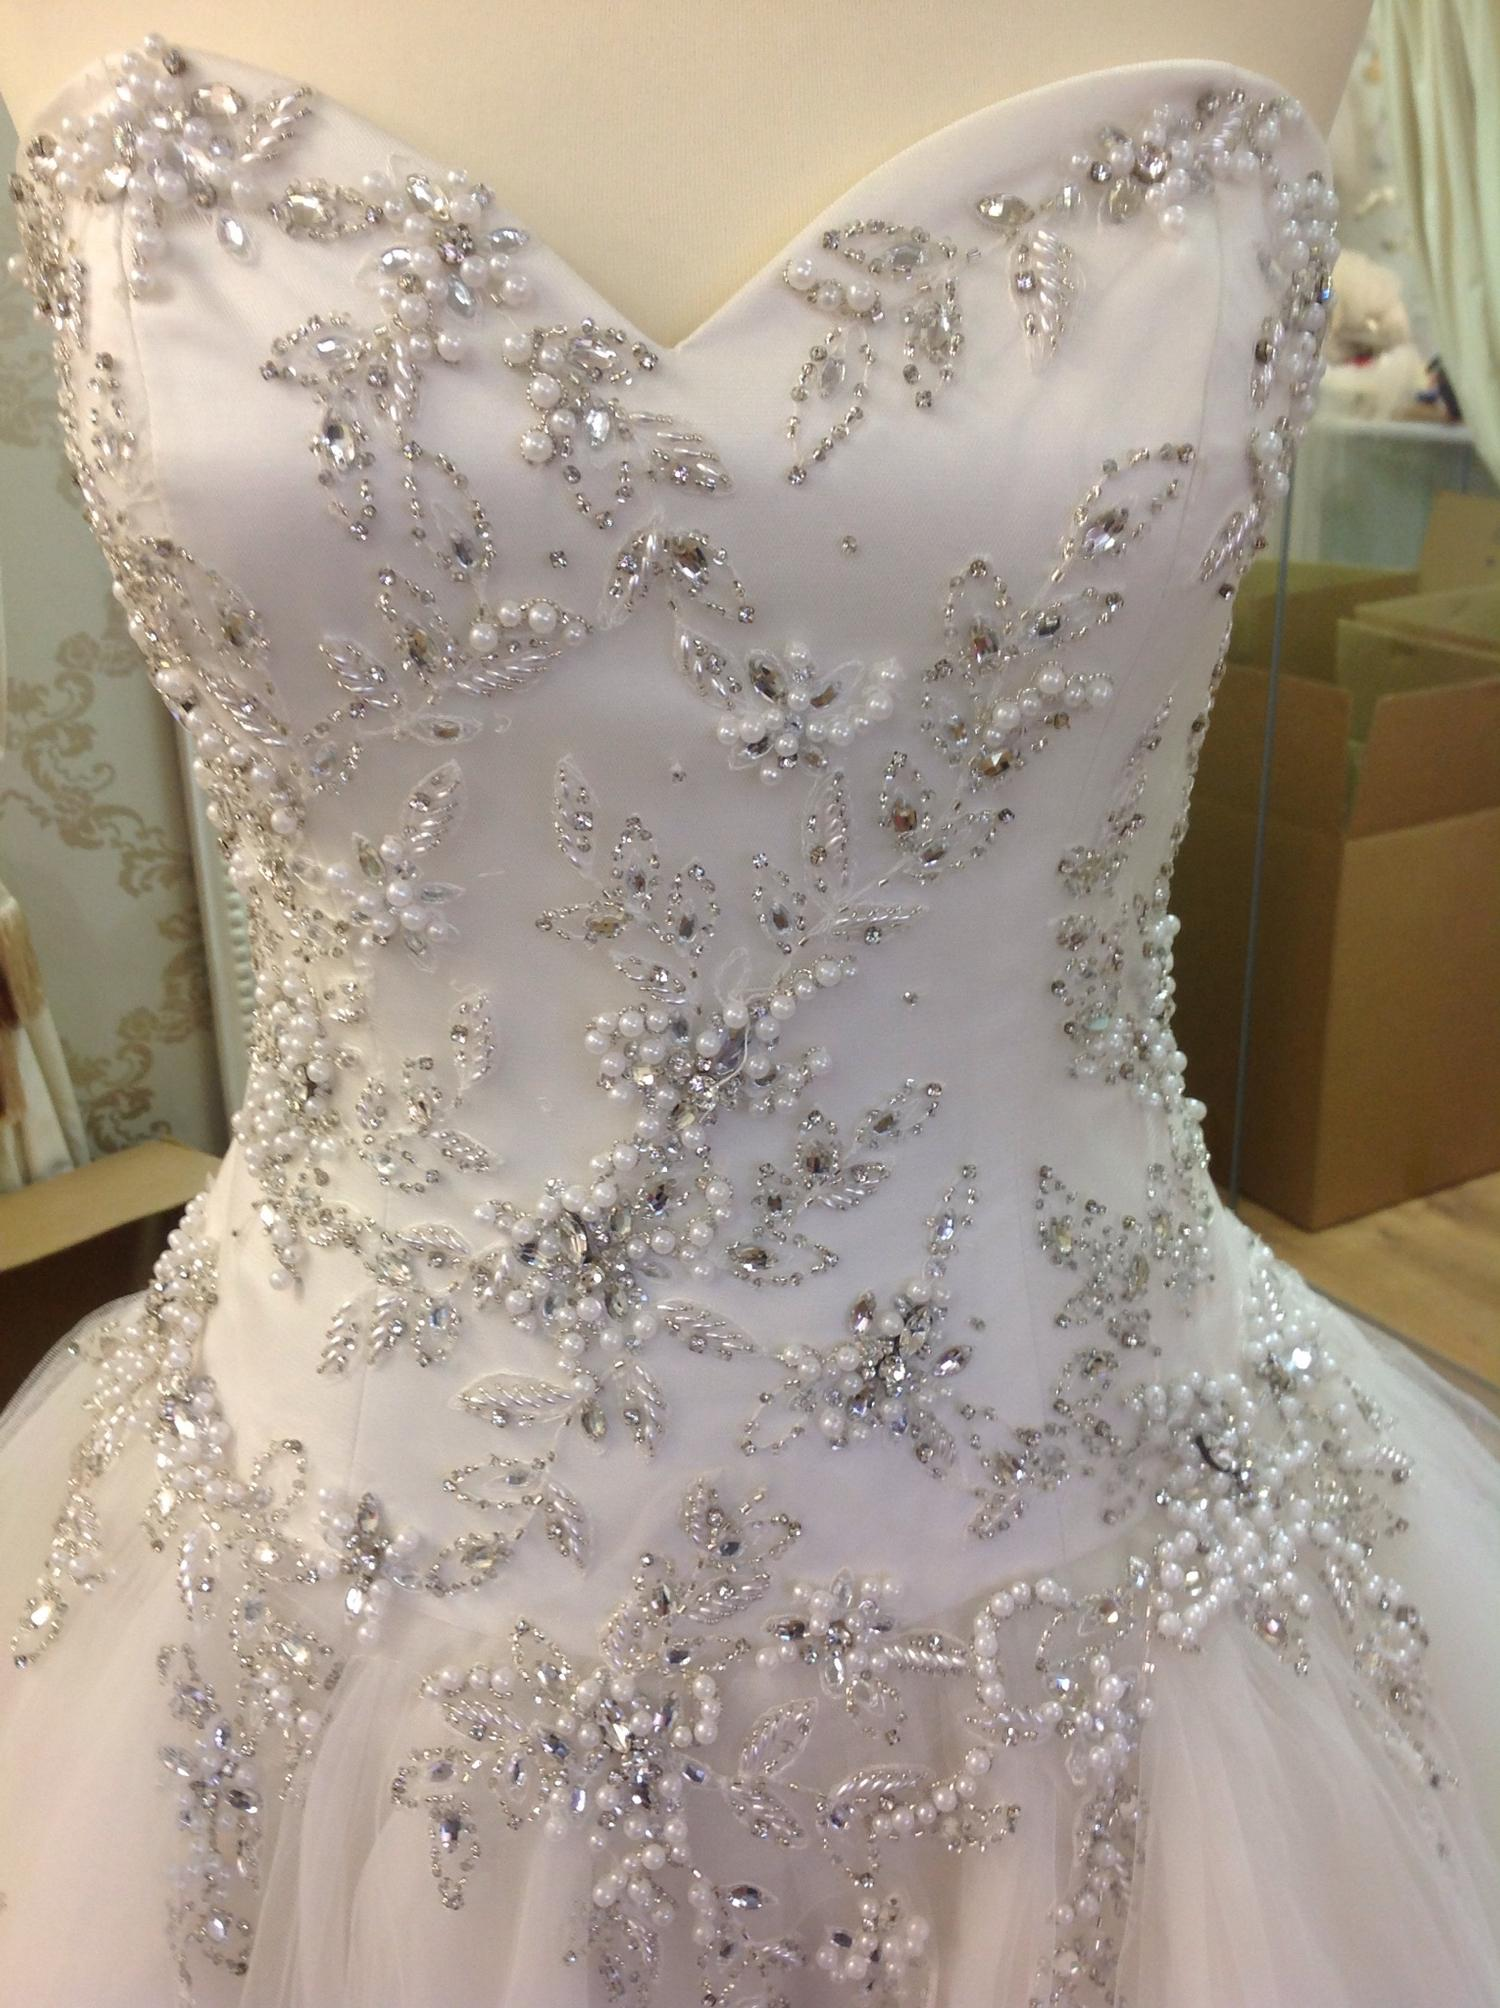 Lot 321 - (4) 3 x Ronald Joyce wedding gown samples, size 14, total rrp £2299